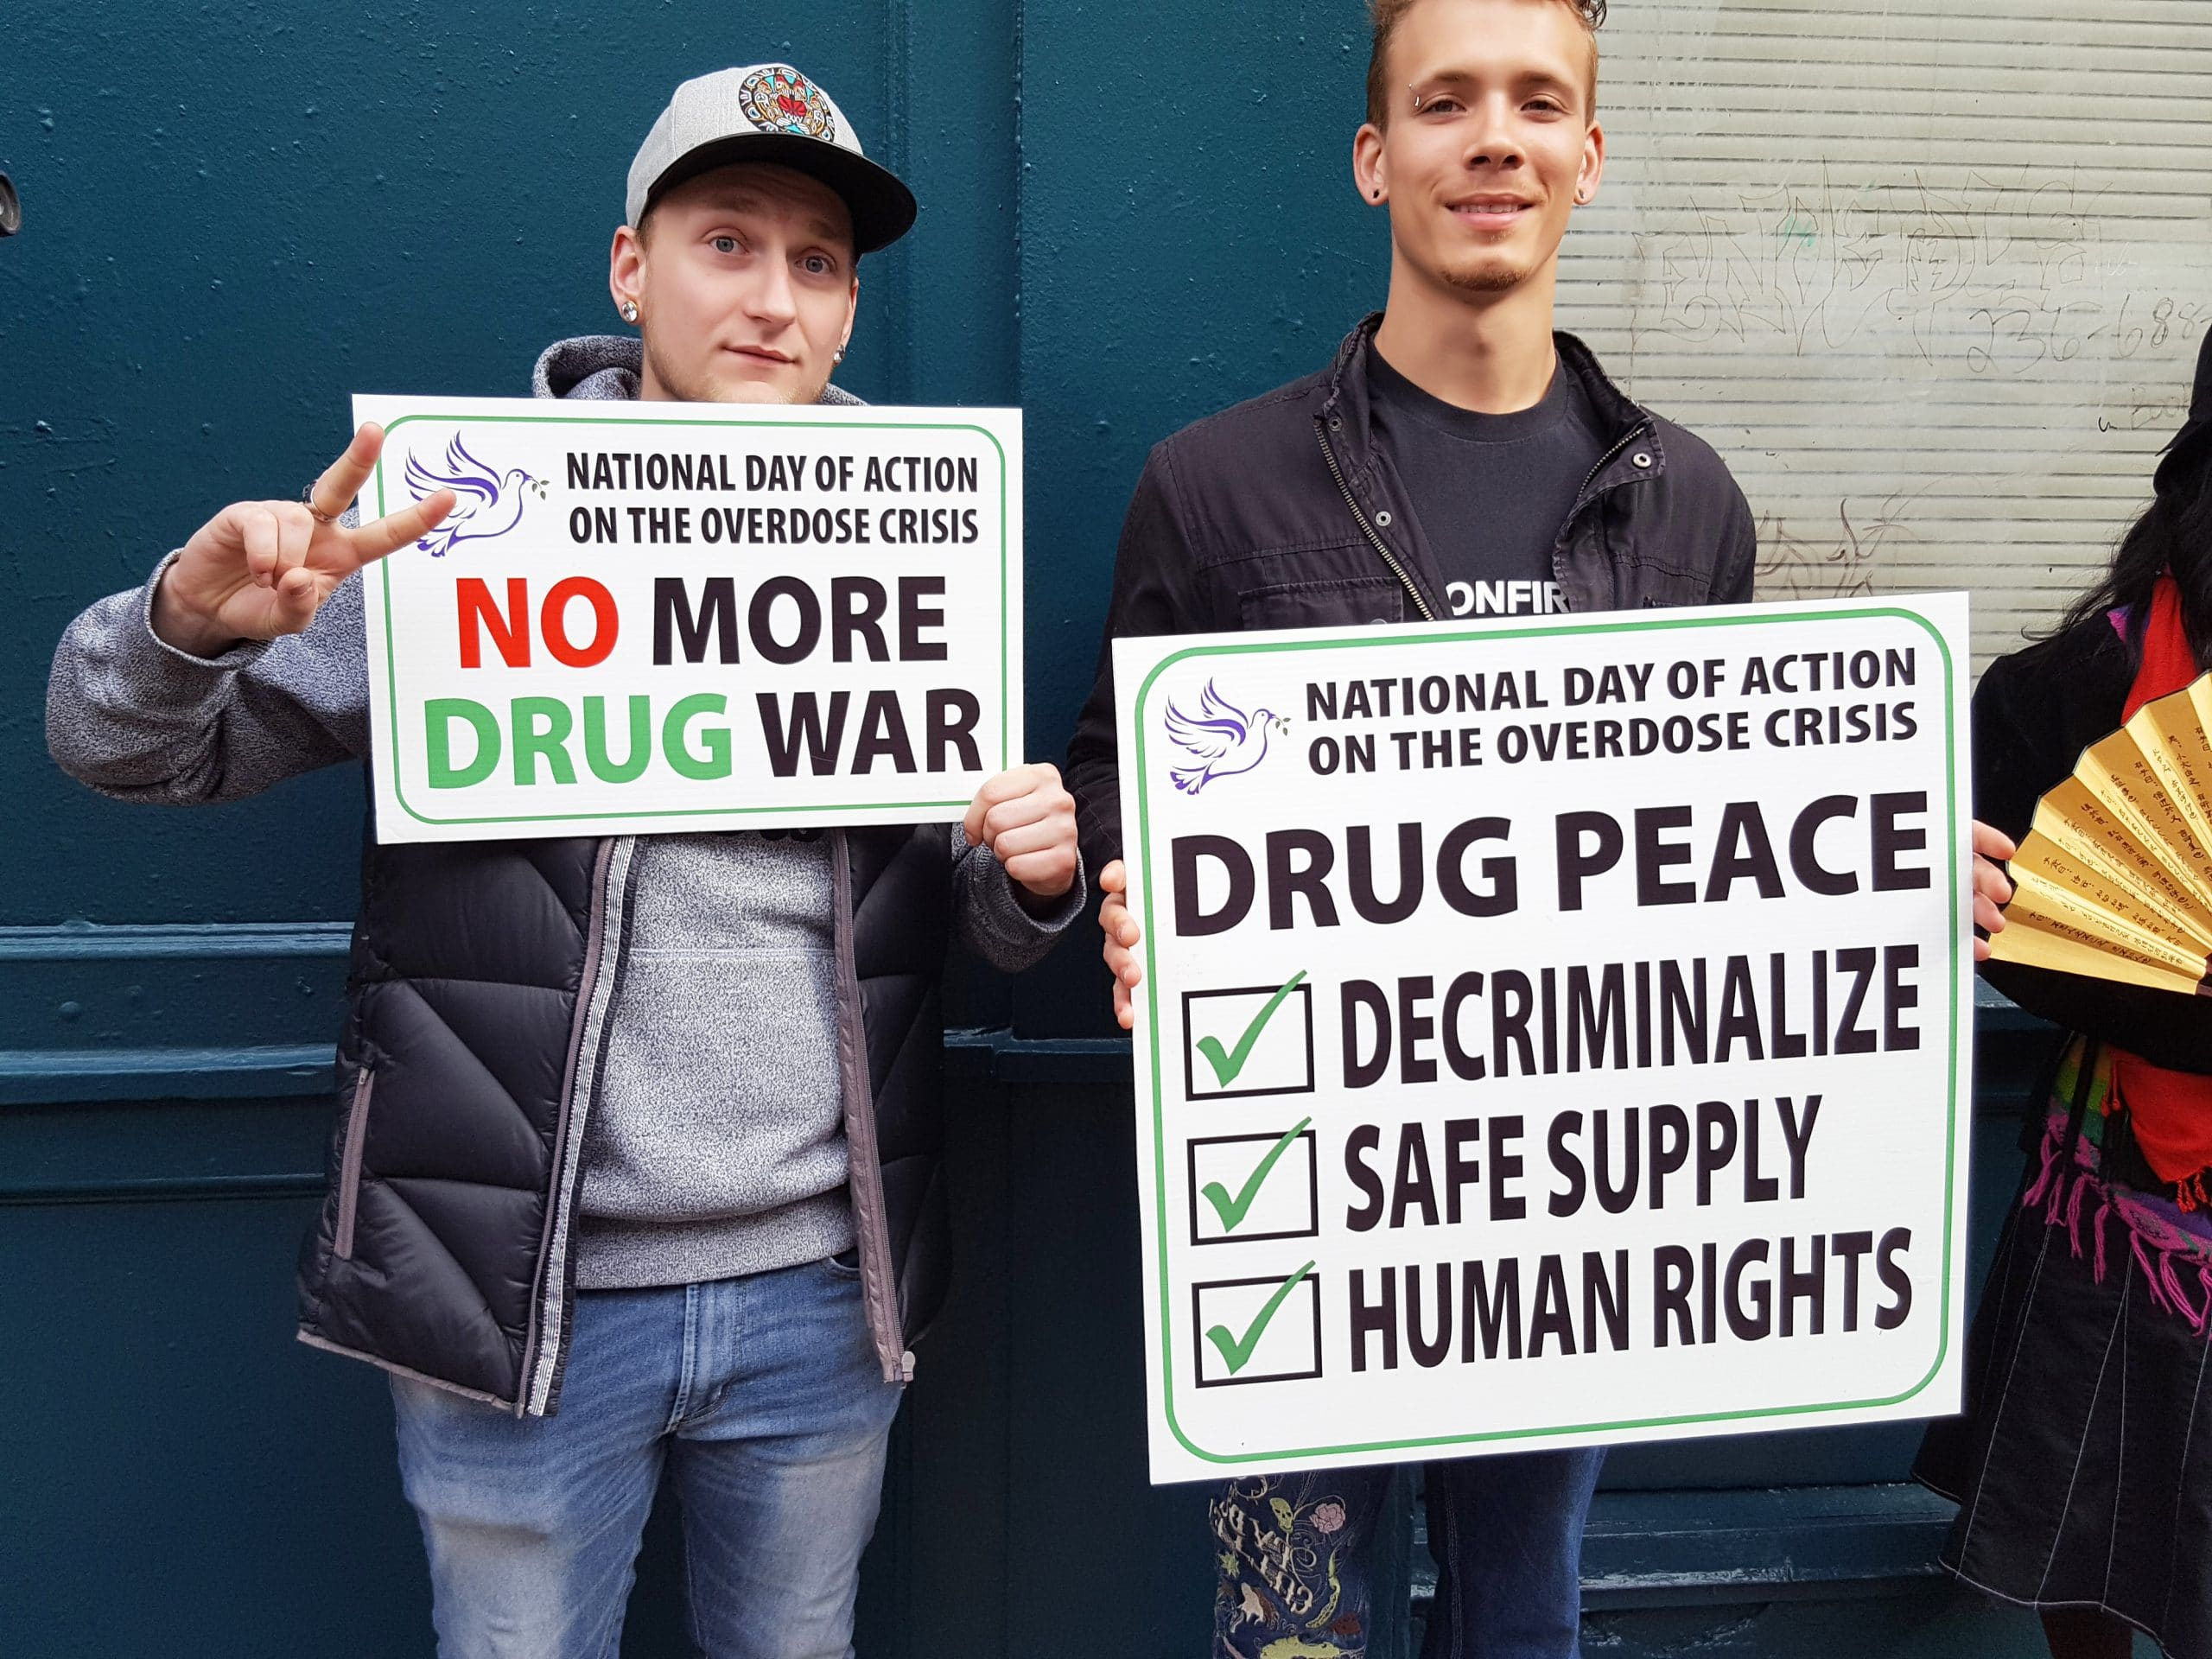 Two men holding signs